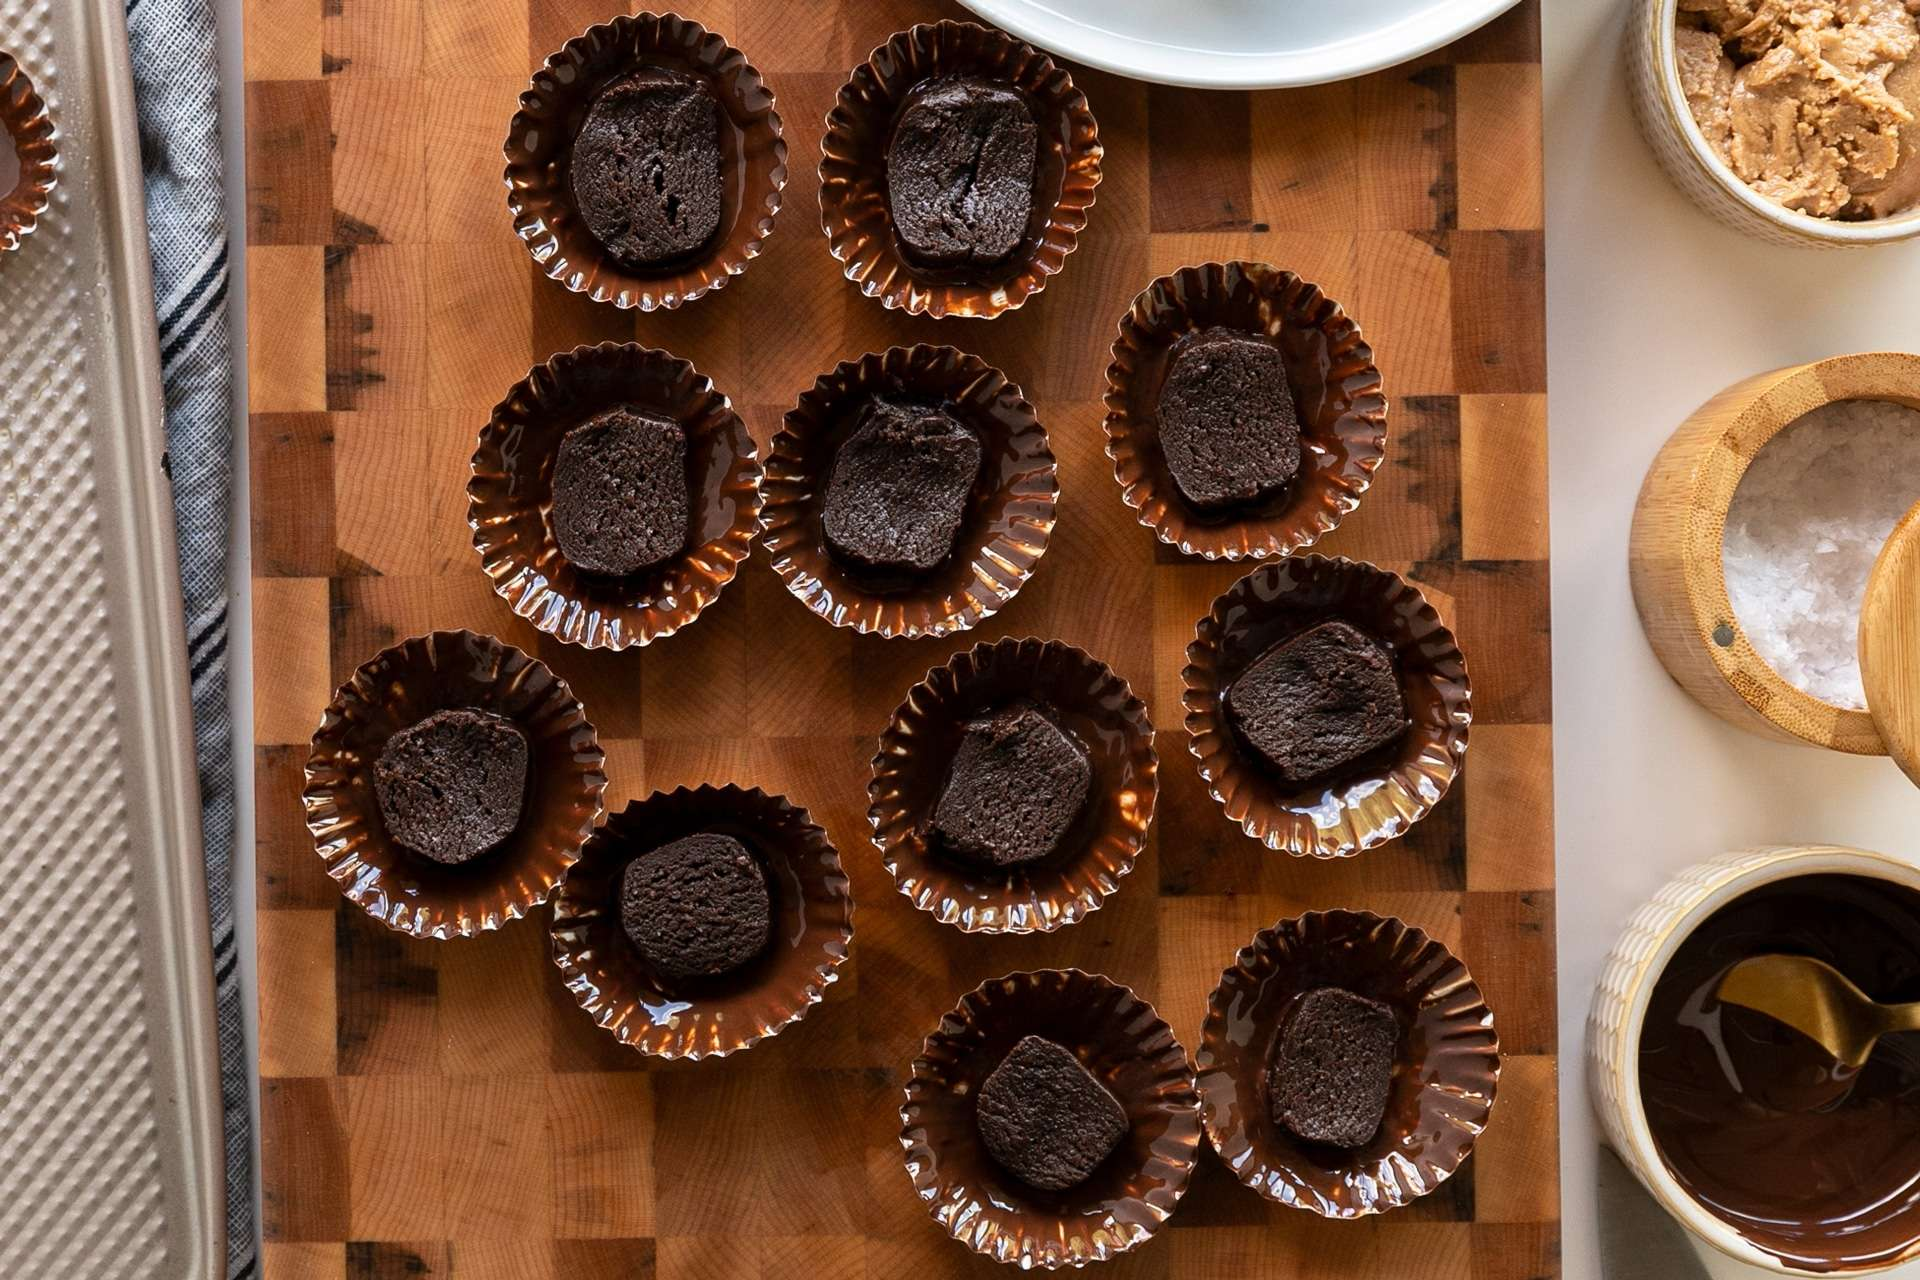 11 cupcake liners coated in dark chocolate then layered with fudgy brownie. Sitting on a maple end grain cutting board with corrugated baking sheet on the left side and peanut butter, sea salt flakes, and melted dark chocolate on the left.